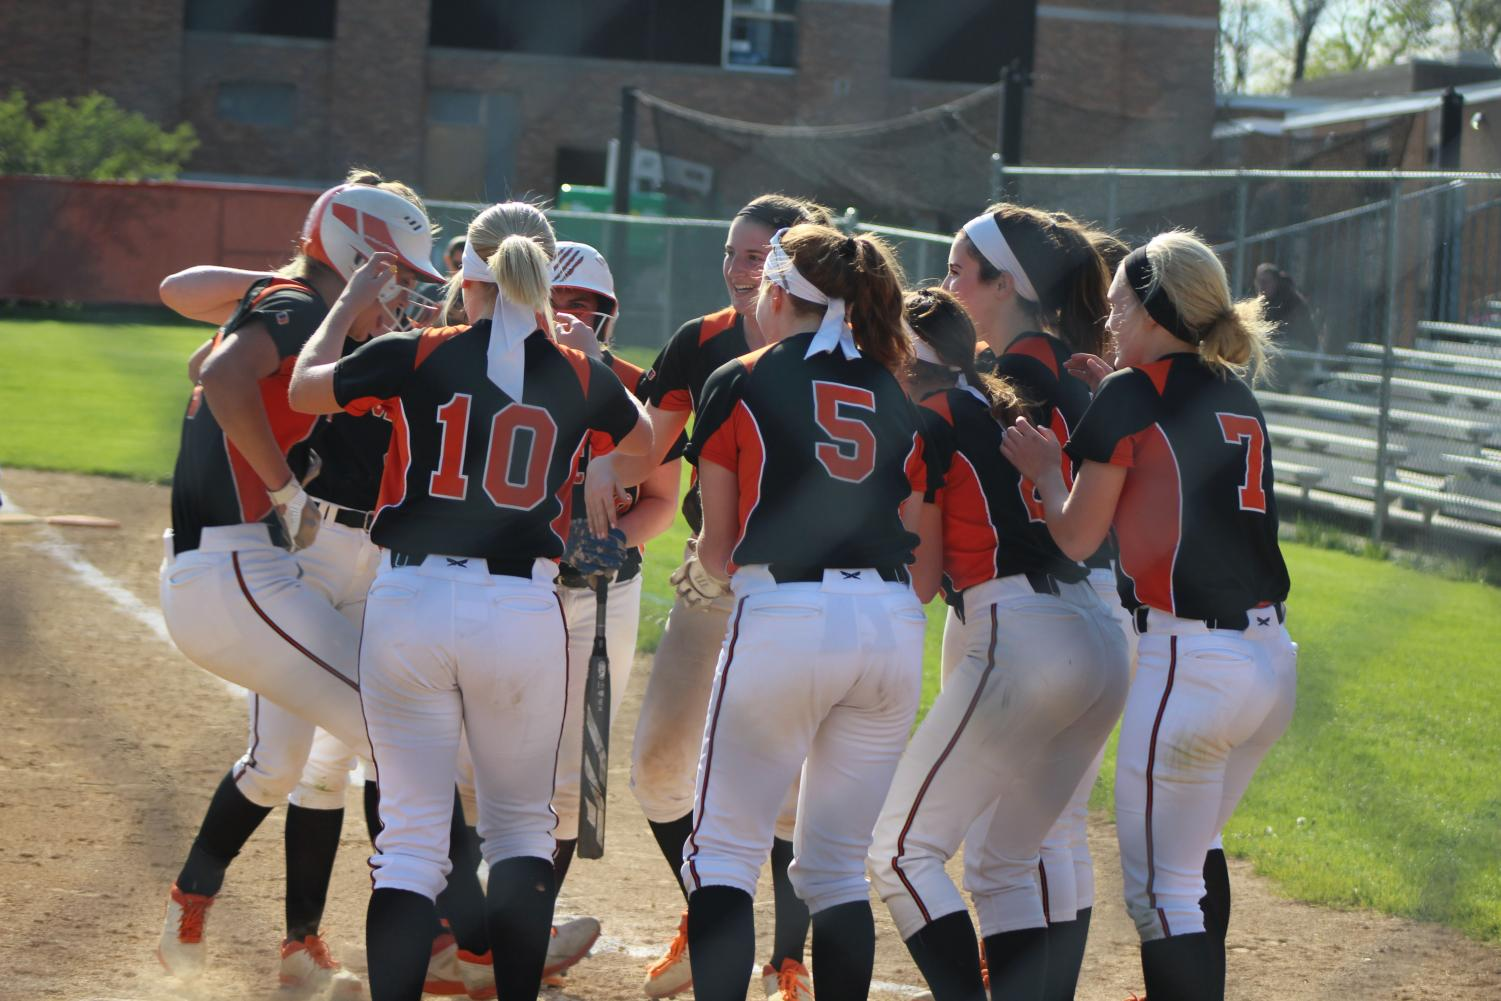 The+Cats+congratulate+teammate+Charlotte+Lynch+on+her+home+run+in+the+third+inning.+